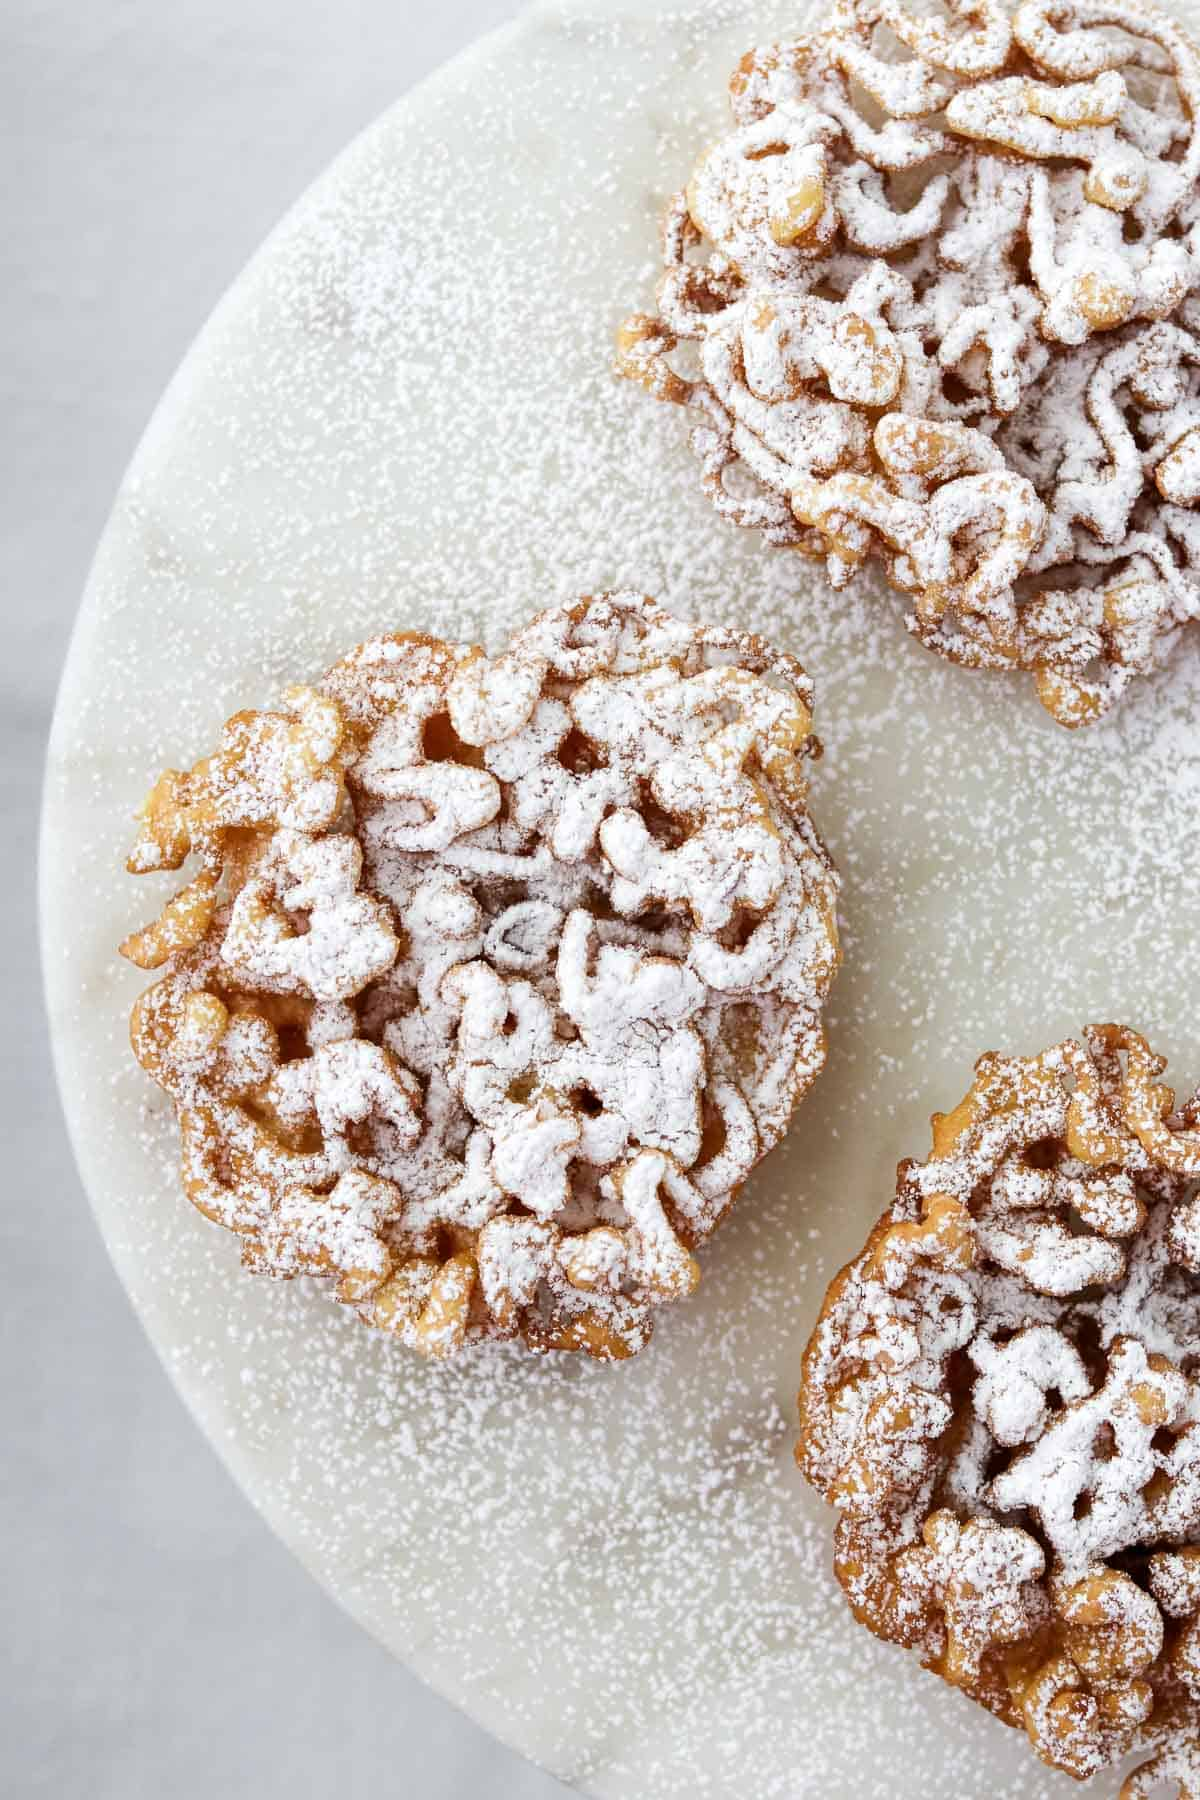 Three funnel cakes dusted in powdered sugar on a marble surface.